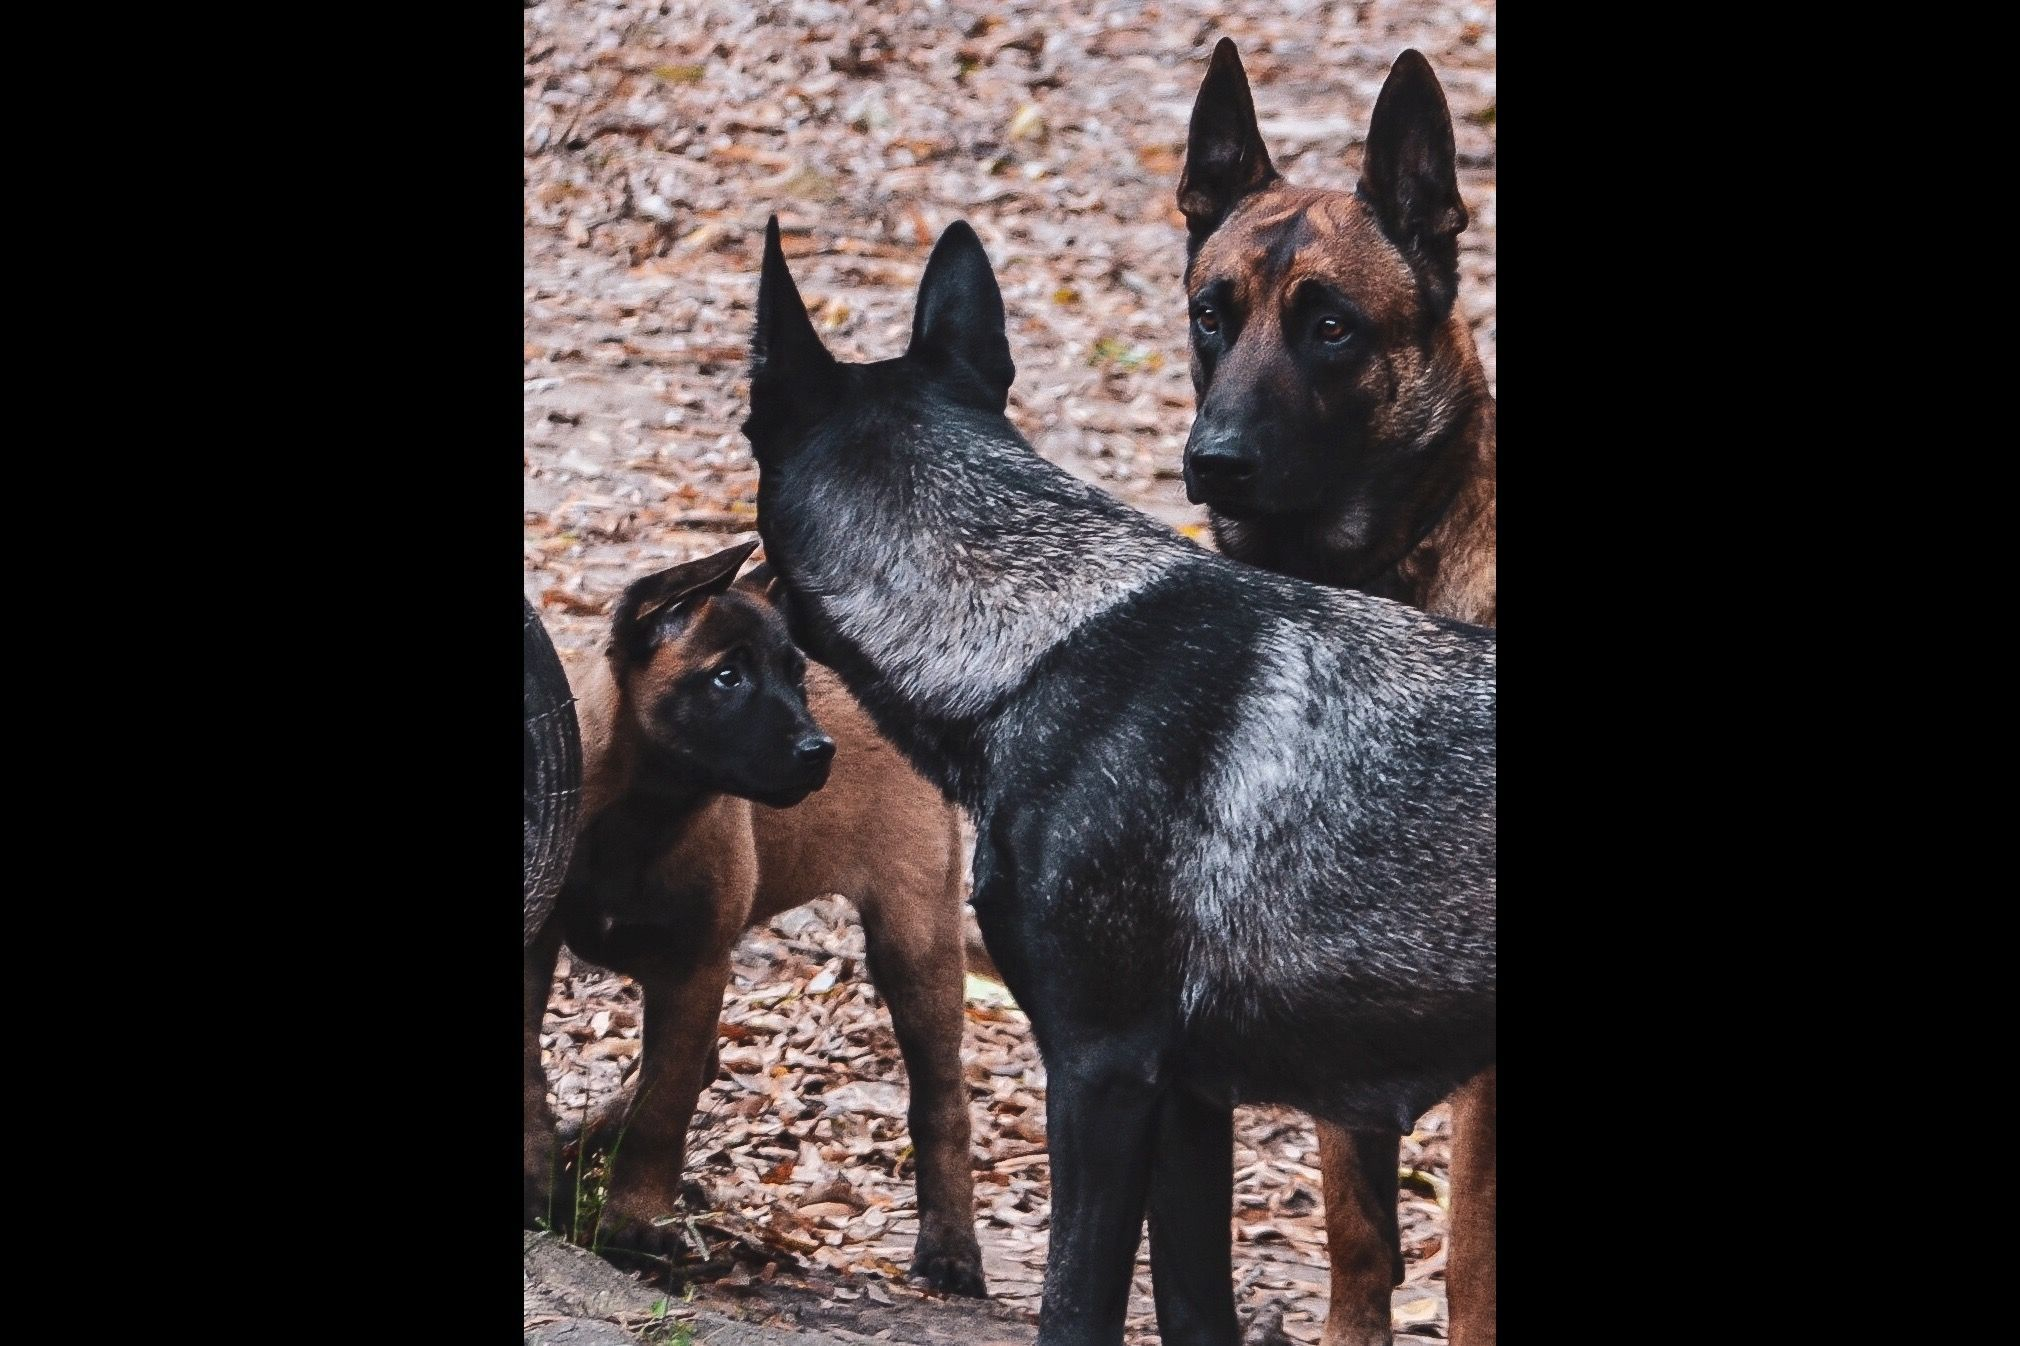 Stanford Malinois Has Belgian Malinois Puppies For Sale In Grand Junction Tn On Akc Puppyfinder Malinois Puppies For Sale Malinois Puppies Malinois